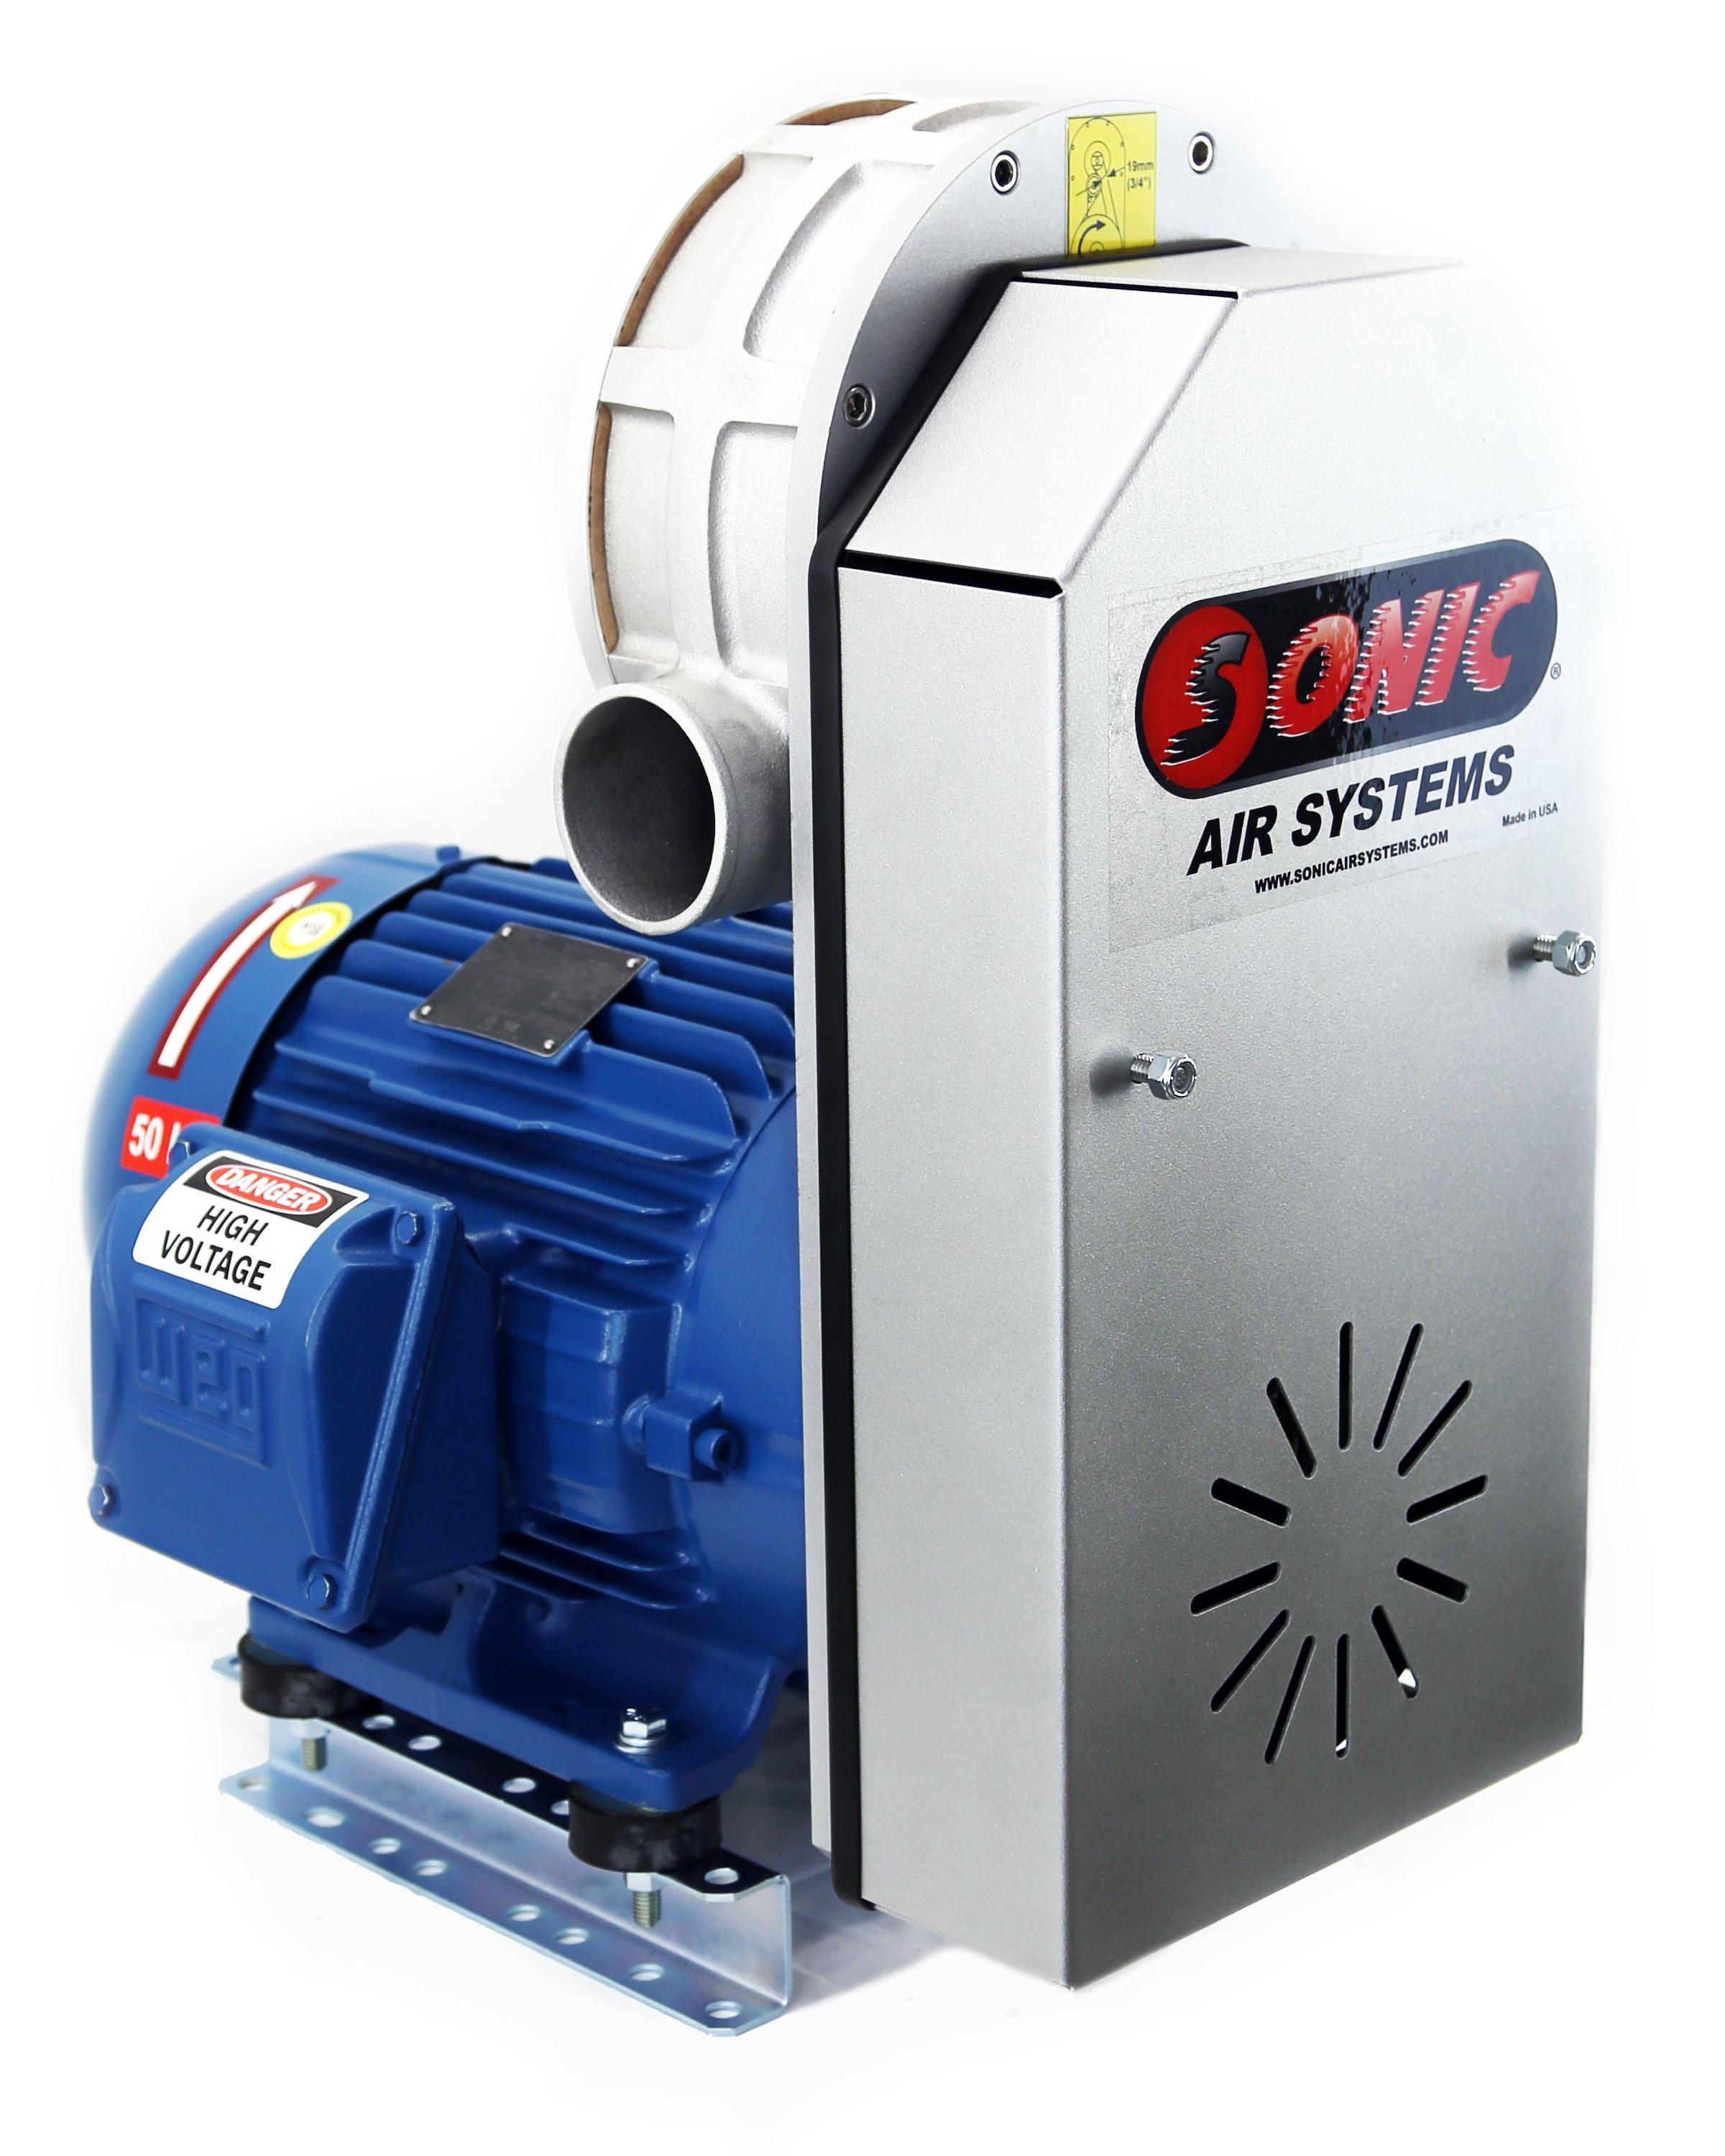 Small Industrial Fans And Blowers : Sonic air centrifugal blowers industrial